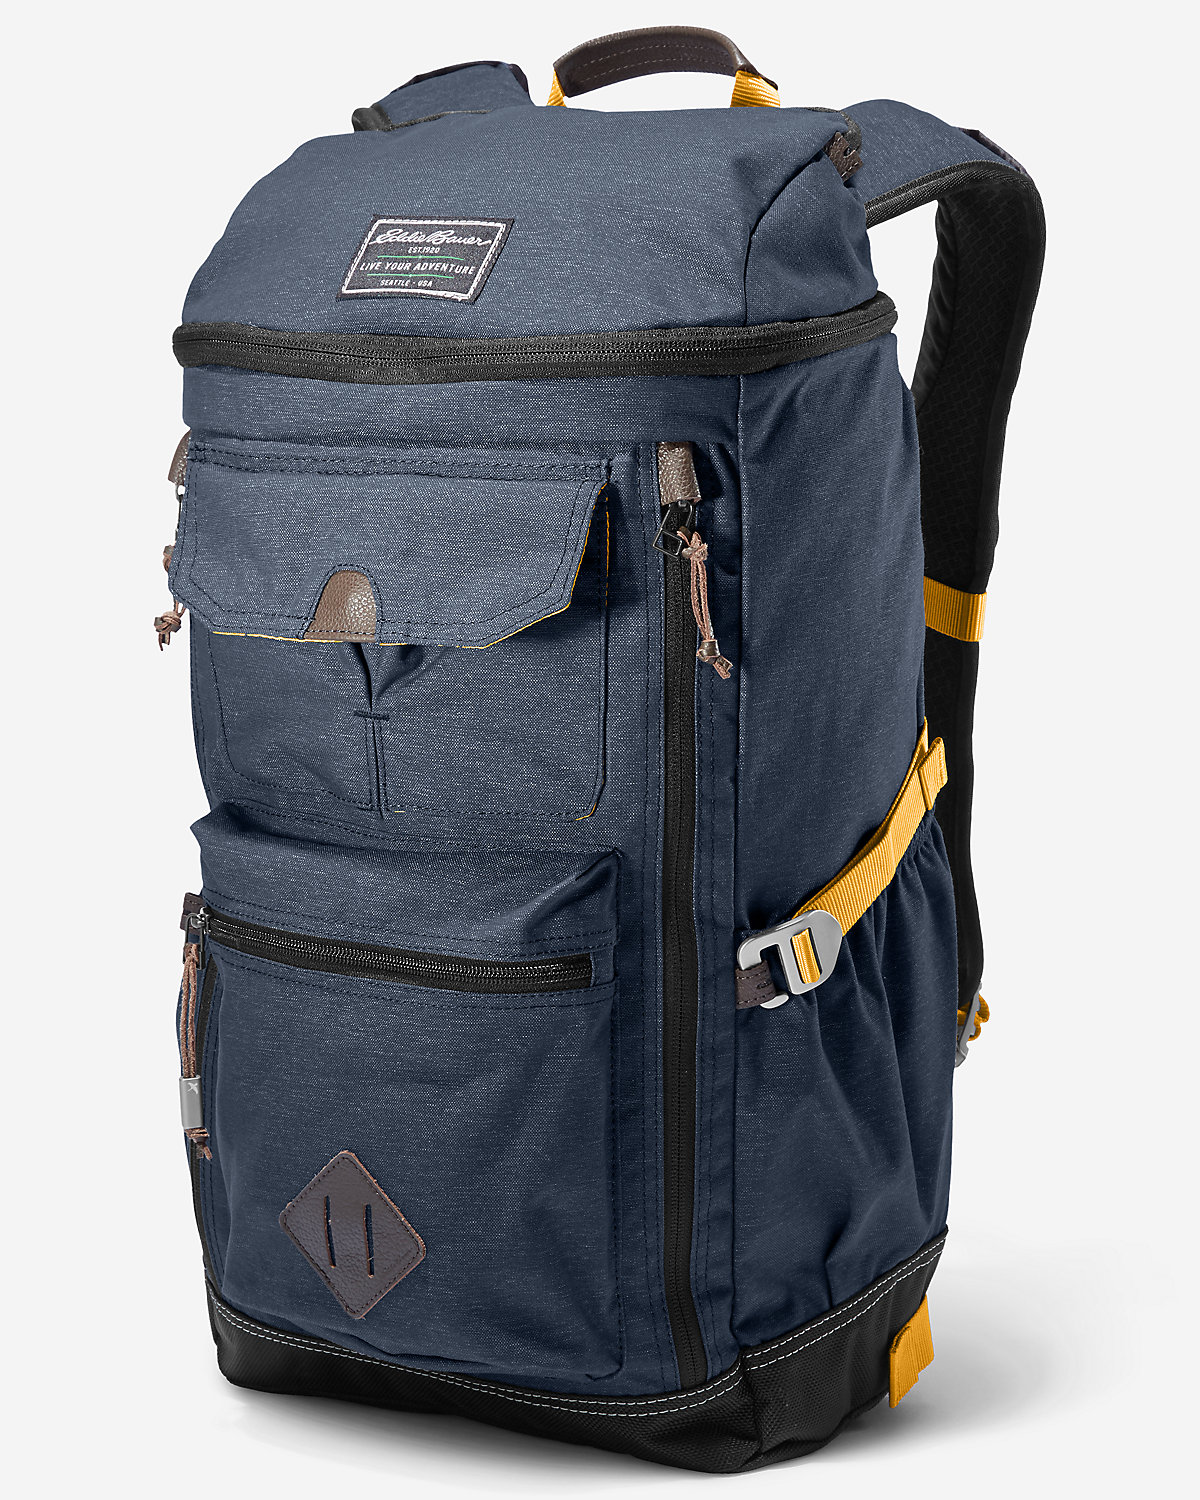 Bygone 30 Pack - $69.30 from $99